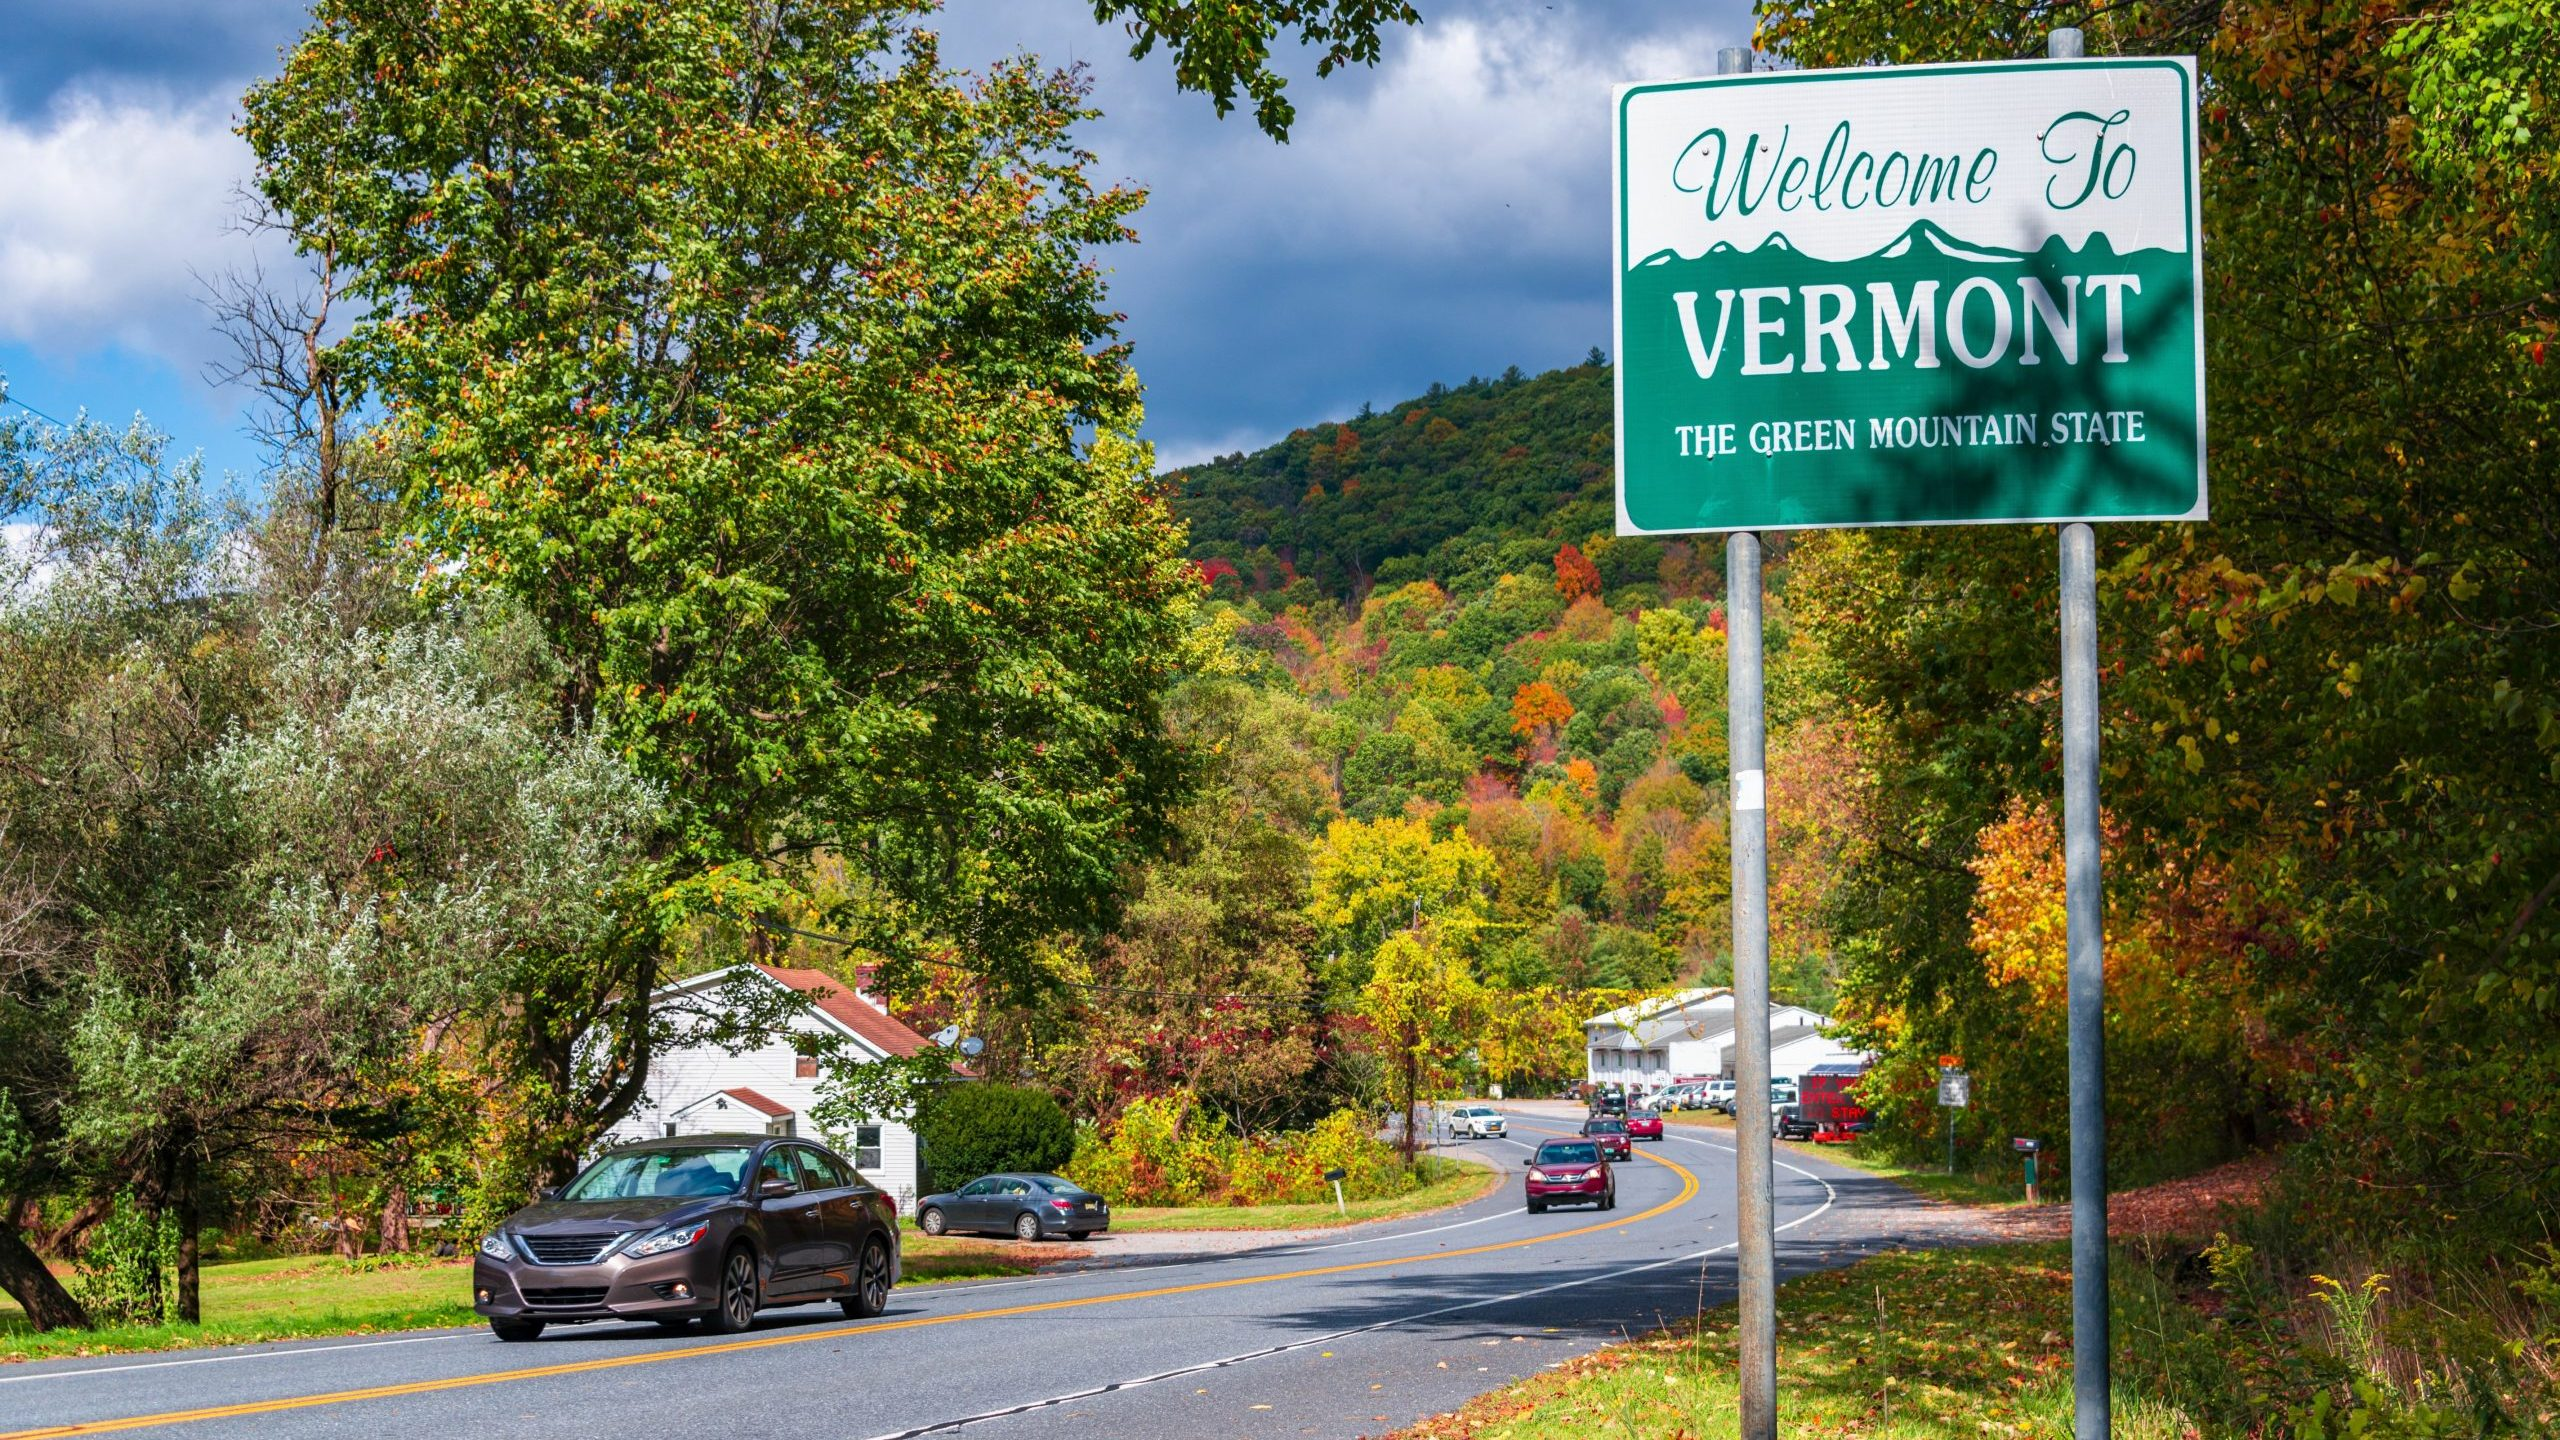 Welcome to Vermont state sign on road